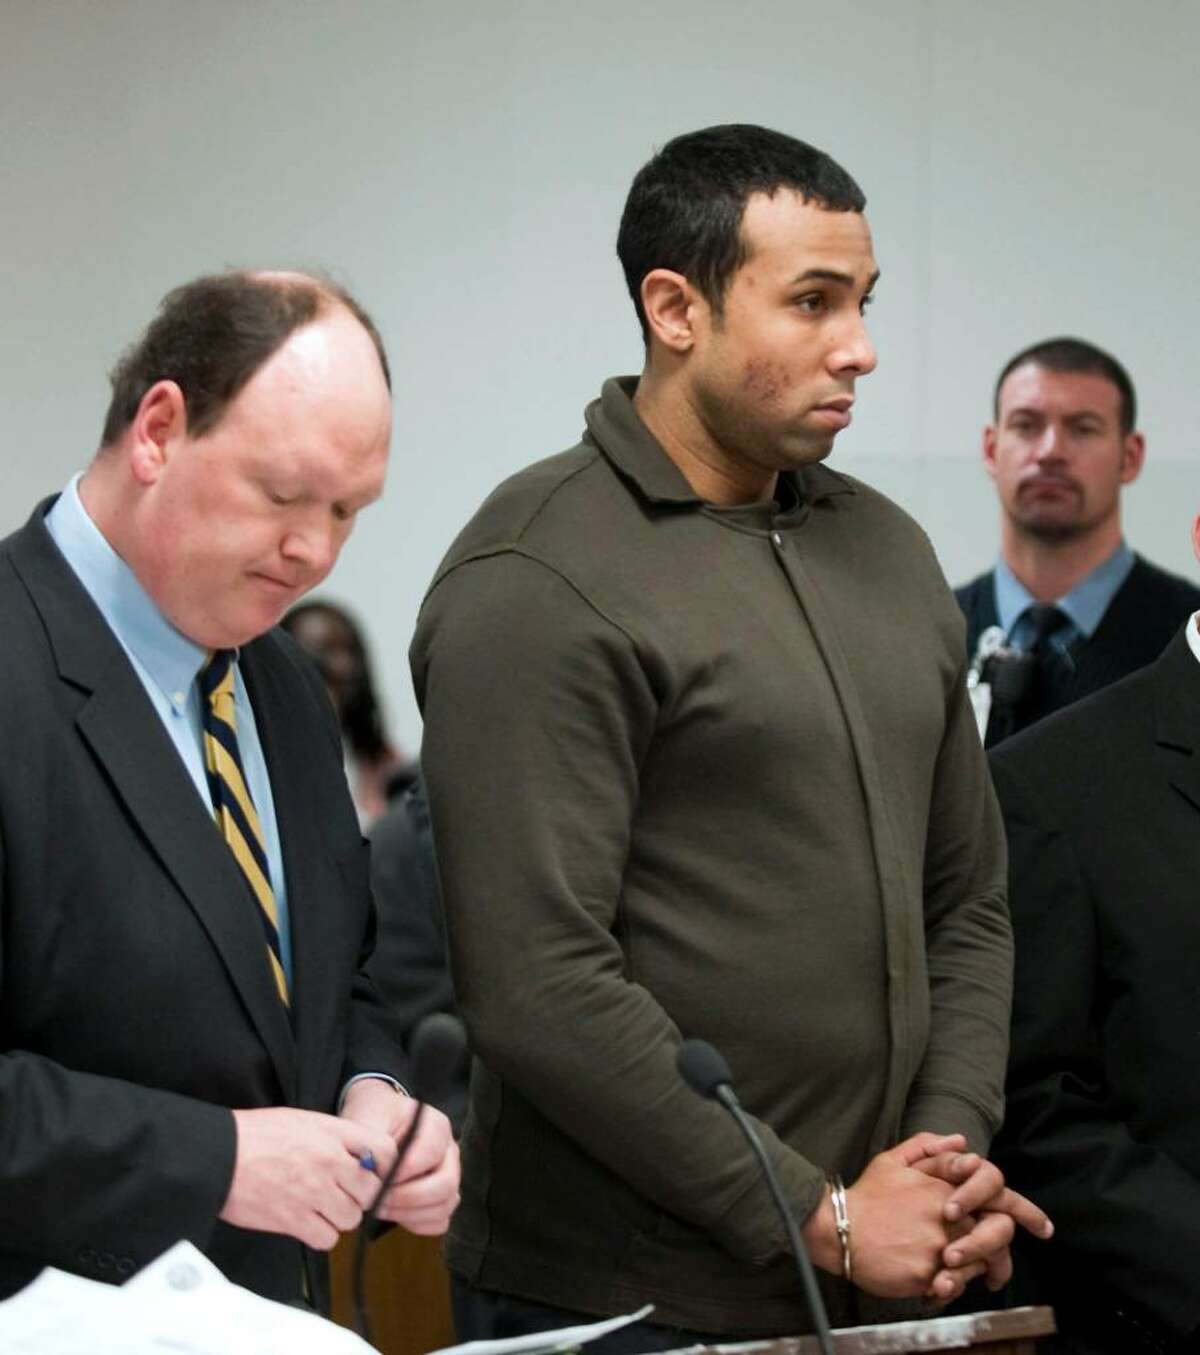 Defense Attorney, Daniel Ford, left, represents defendent and Probation Officer, Alphah East, center, during his arraignment in Norwalk, Conn. Superior Court Tuesday Jan. 12, 2009. East is held in connection to bribery while working as a Probation Officer and was arrested by Norwalk police Monday night on charges of collecting $13,500 in bribes over the past six months from the father of one of the young women he monitored, according to authorities